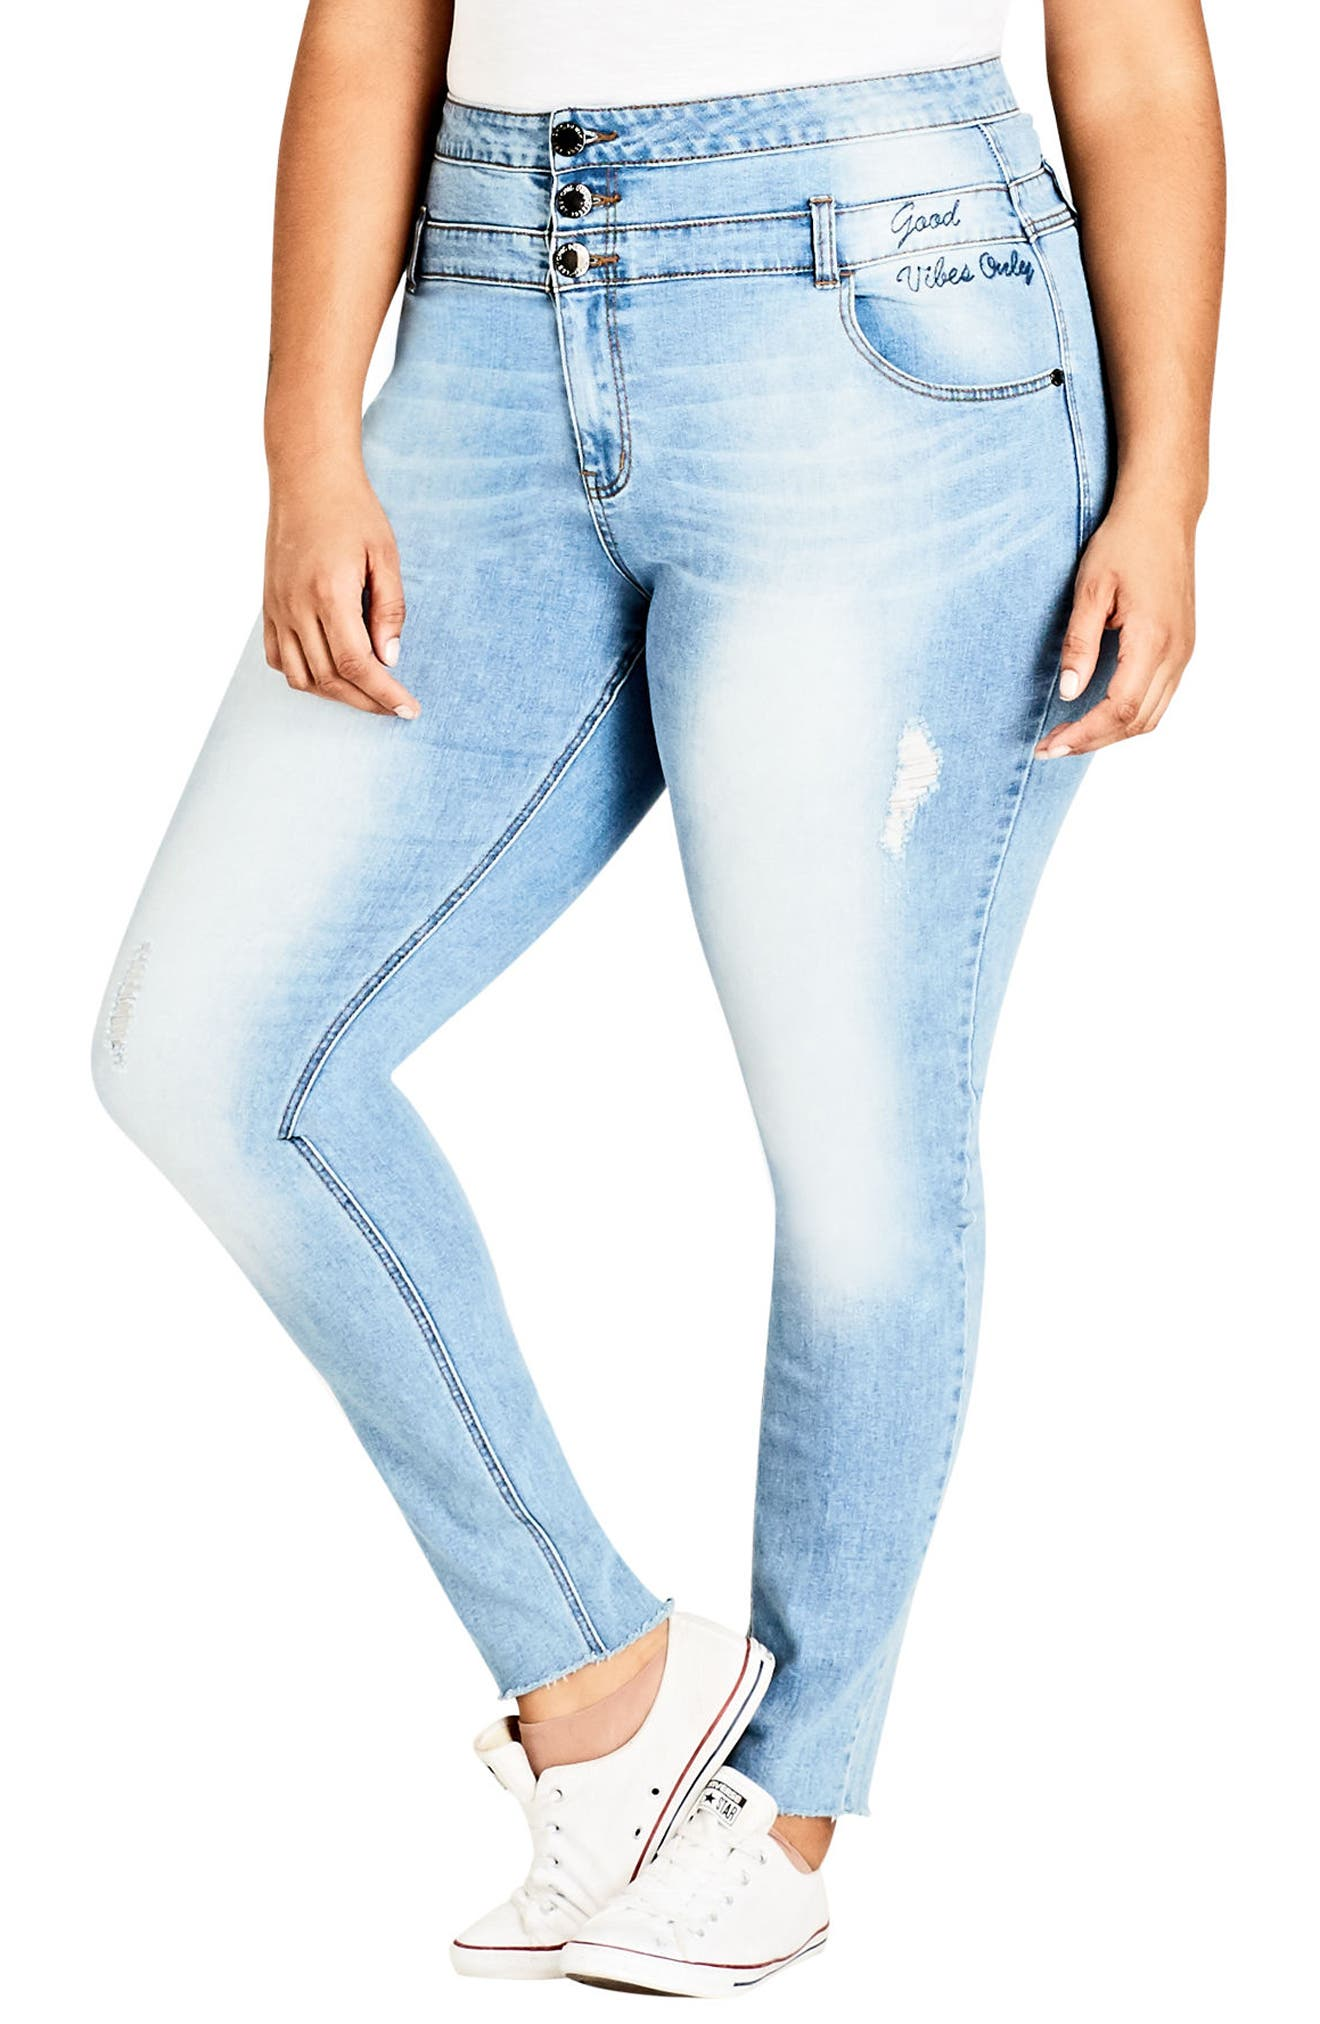 Harley Vibes Ripped Corset Skinny Jeans,                         Main,                         color, Light Indigo